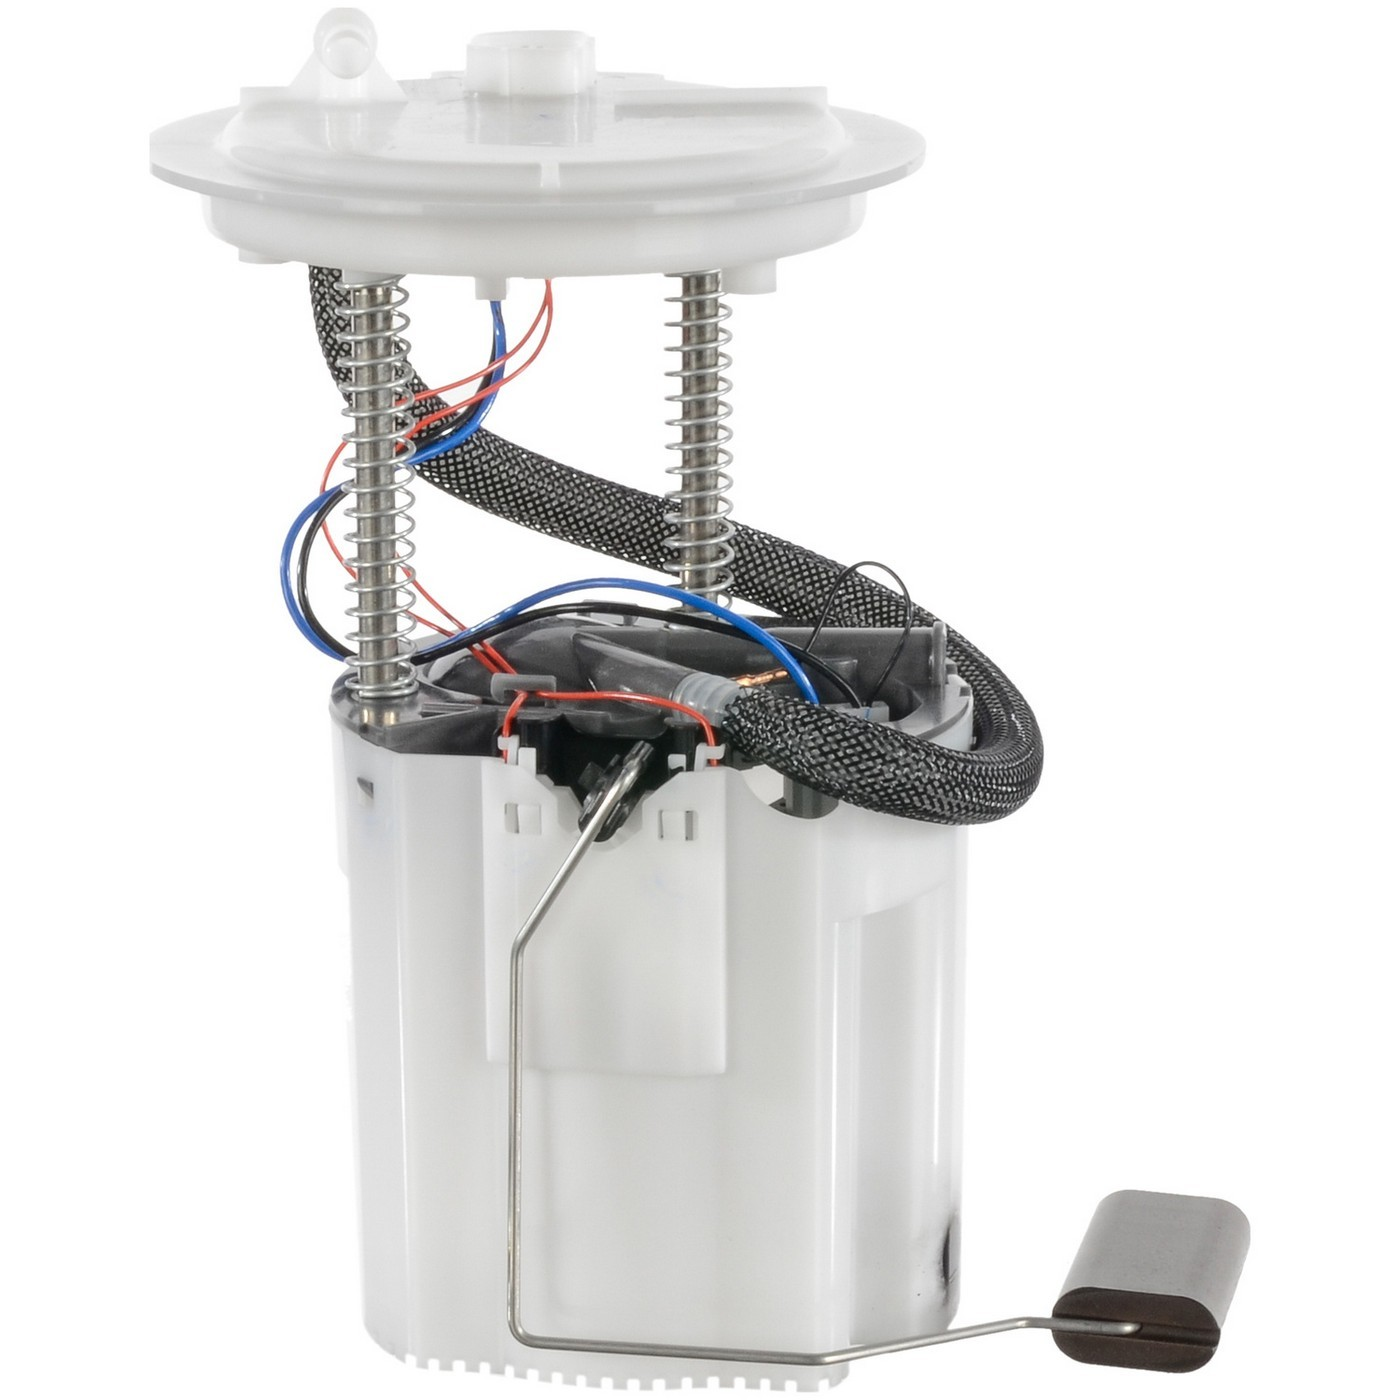 Fuel Pump Assemblies Bosch Auto Parts Automotive Electrical Wiring Supplies Supplied The Industrys First Injection System With A High Pressure Electric In 1967 Since Then Has Stood At Forefront Of